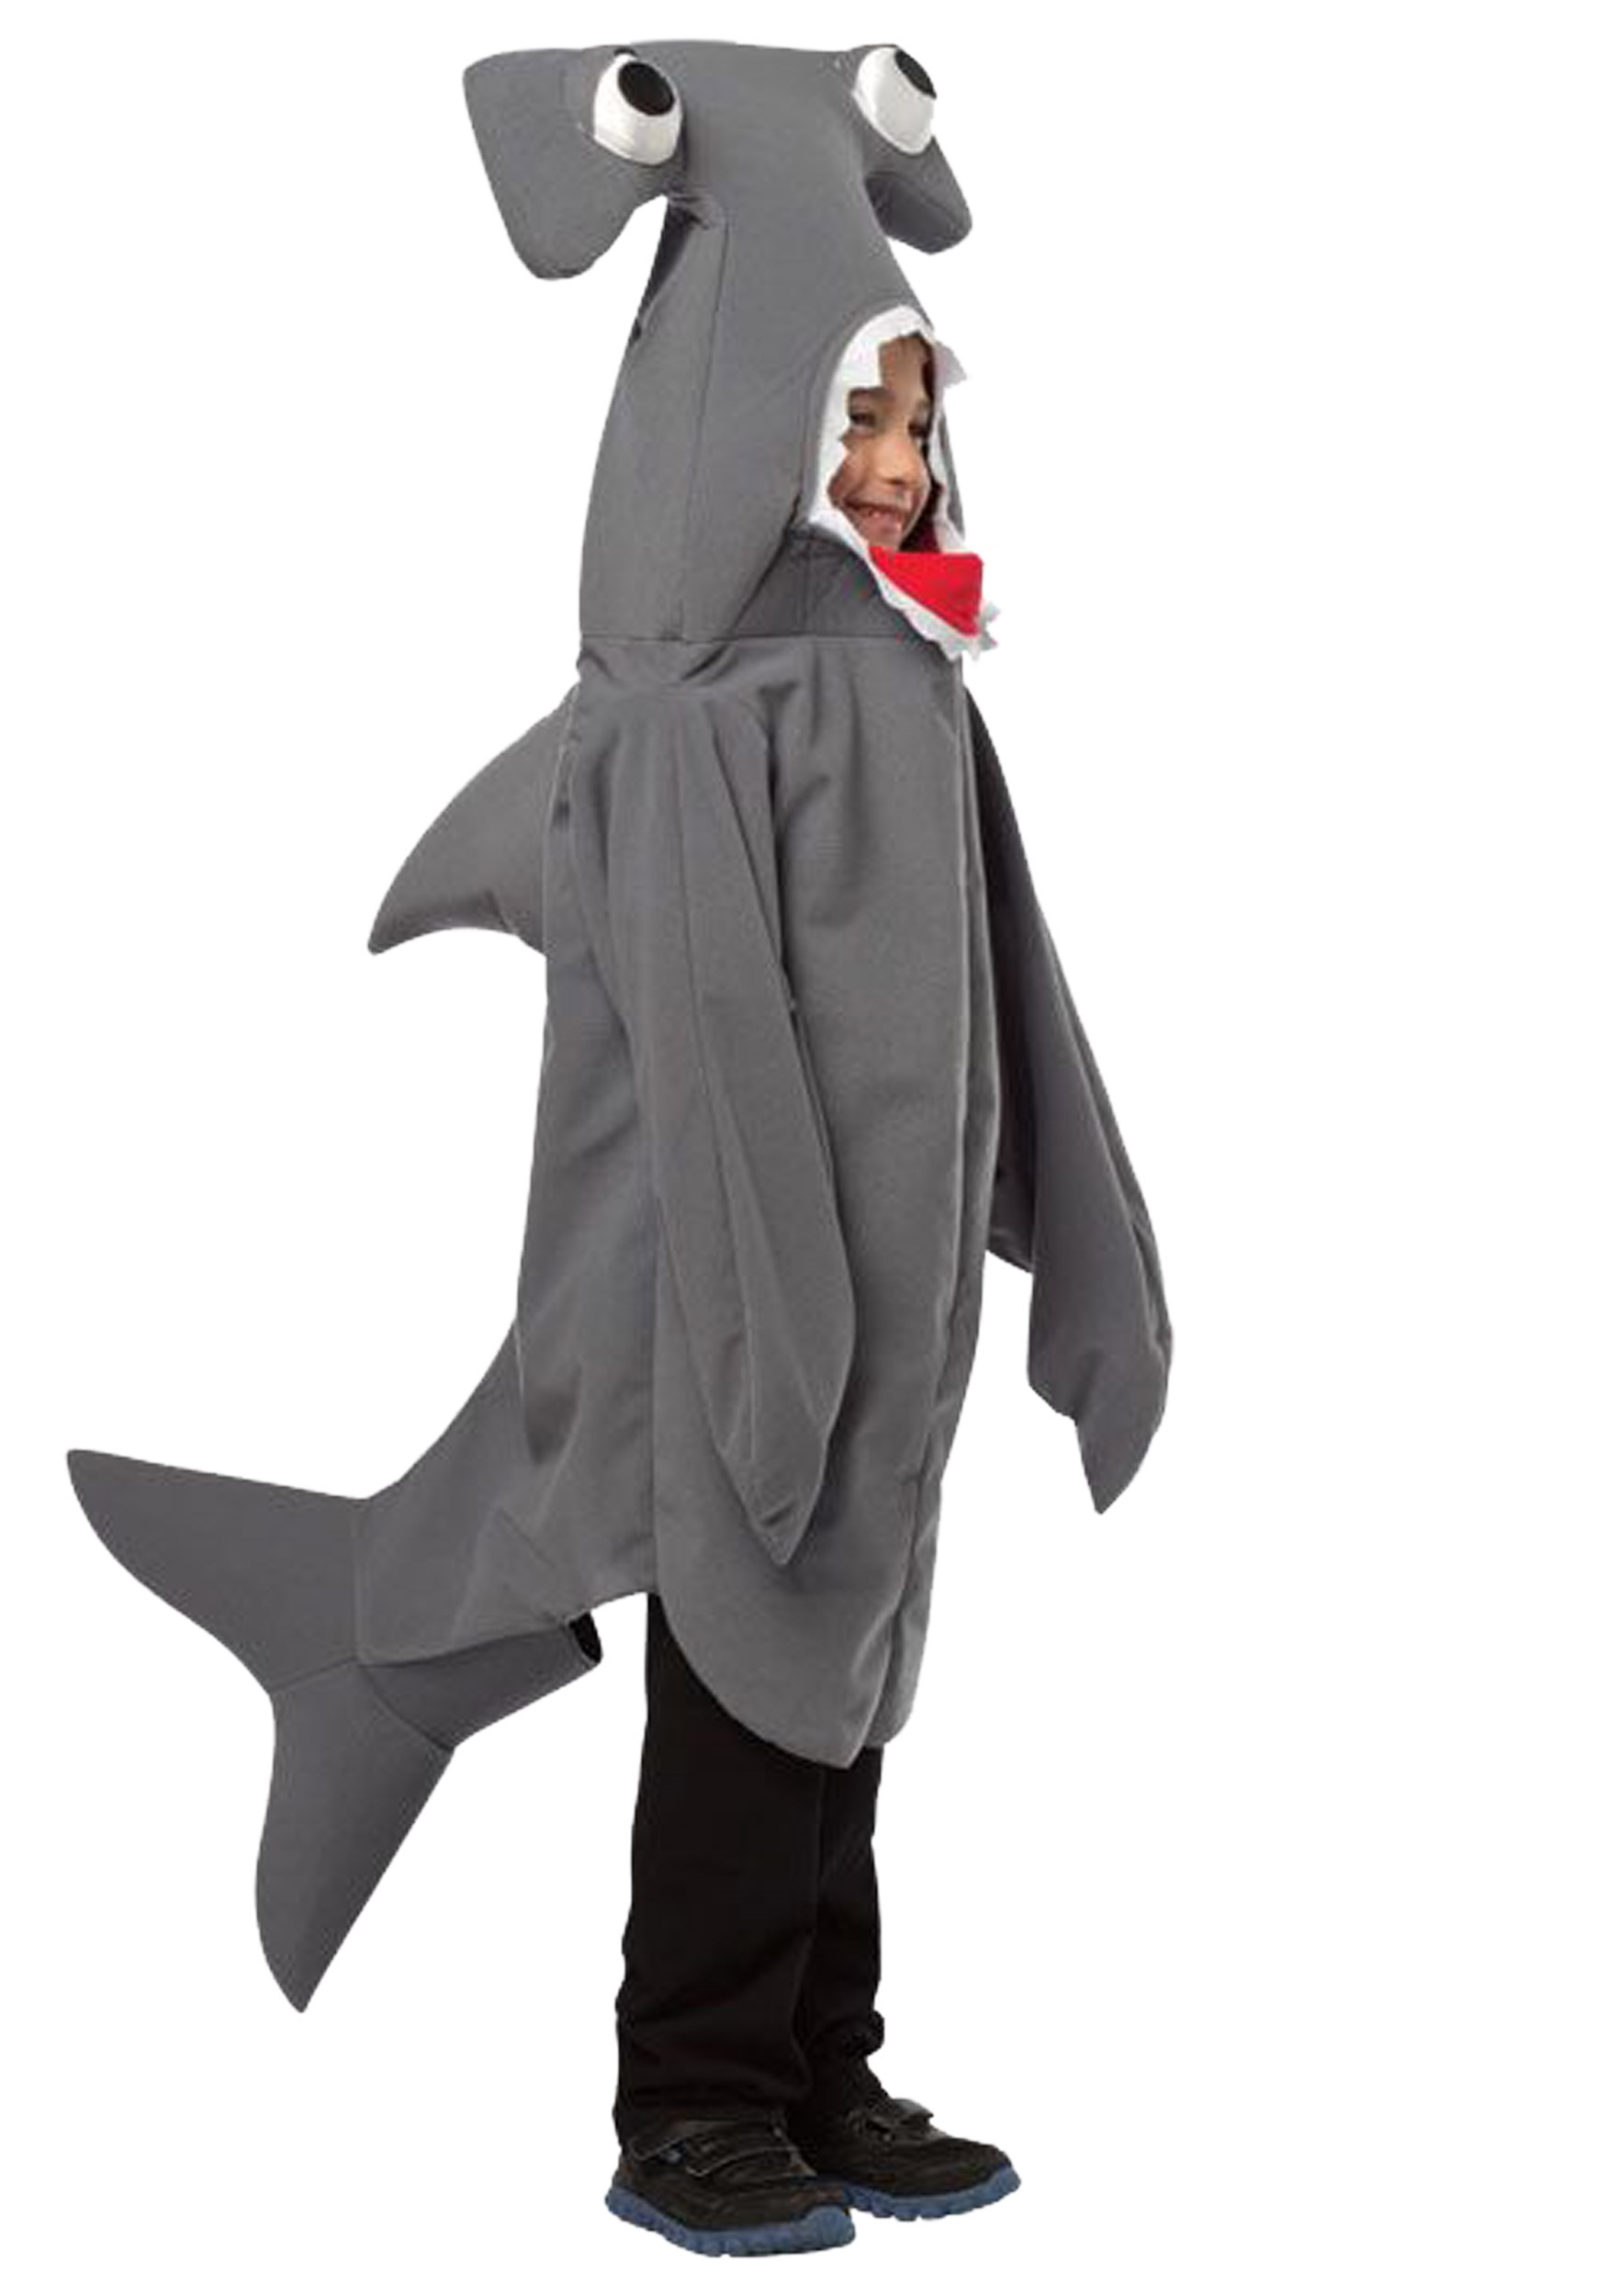 Child Hammerhead Shark Costume  sc 1 st  Halloween Costumes & Shark Costumes For Kids And Adults - HalloweenCostumes.com